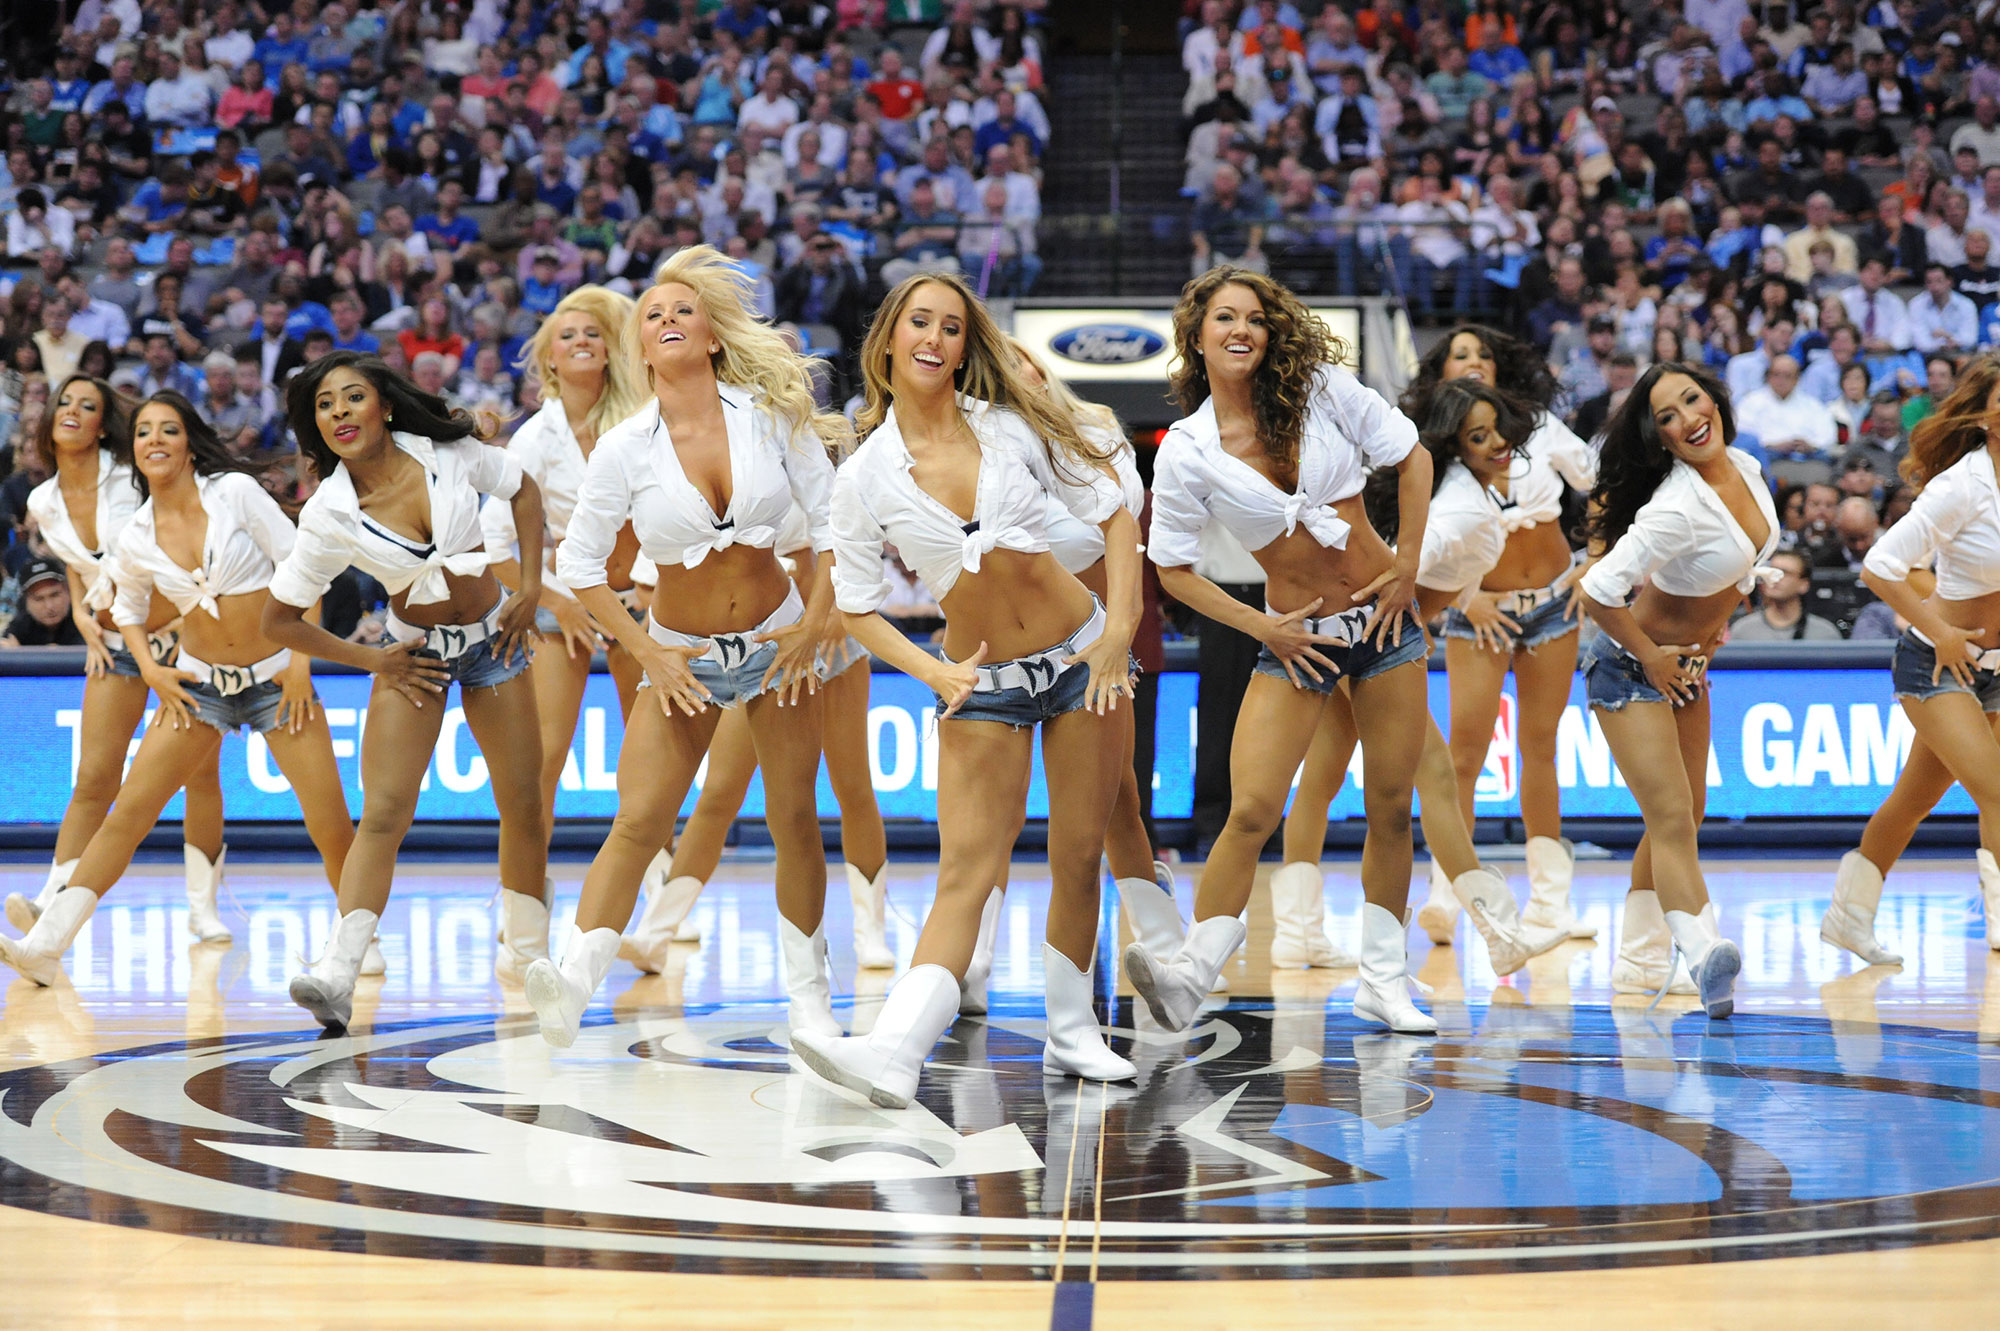 The Mavericks Dancers perform during an NBA game between the San Antonio Spurs and the Dallas Mavericks at the American Airlines Center in Dallas, TX on April 10, 2014.